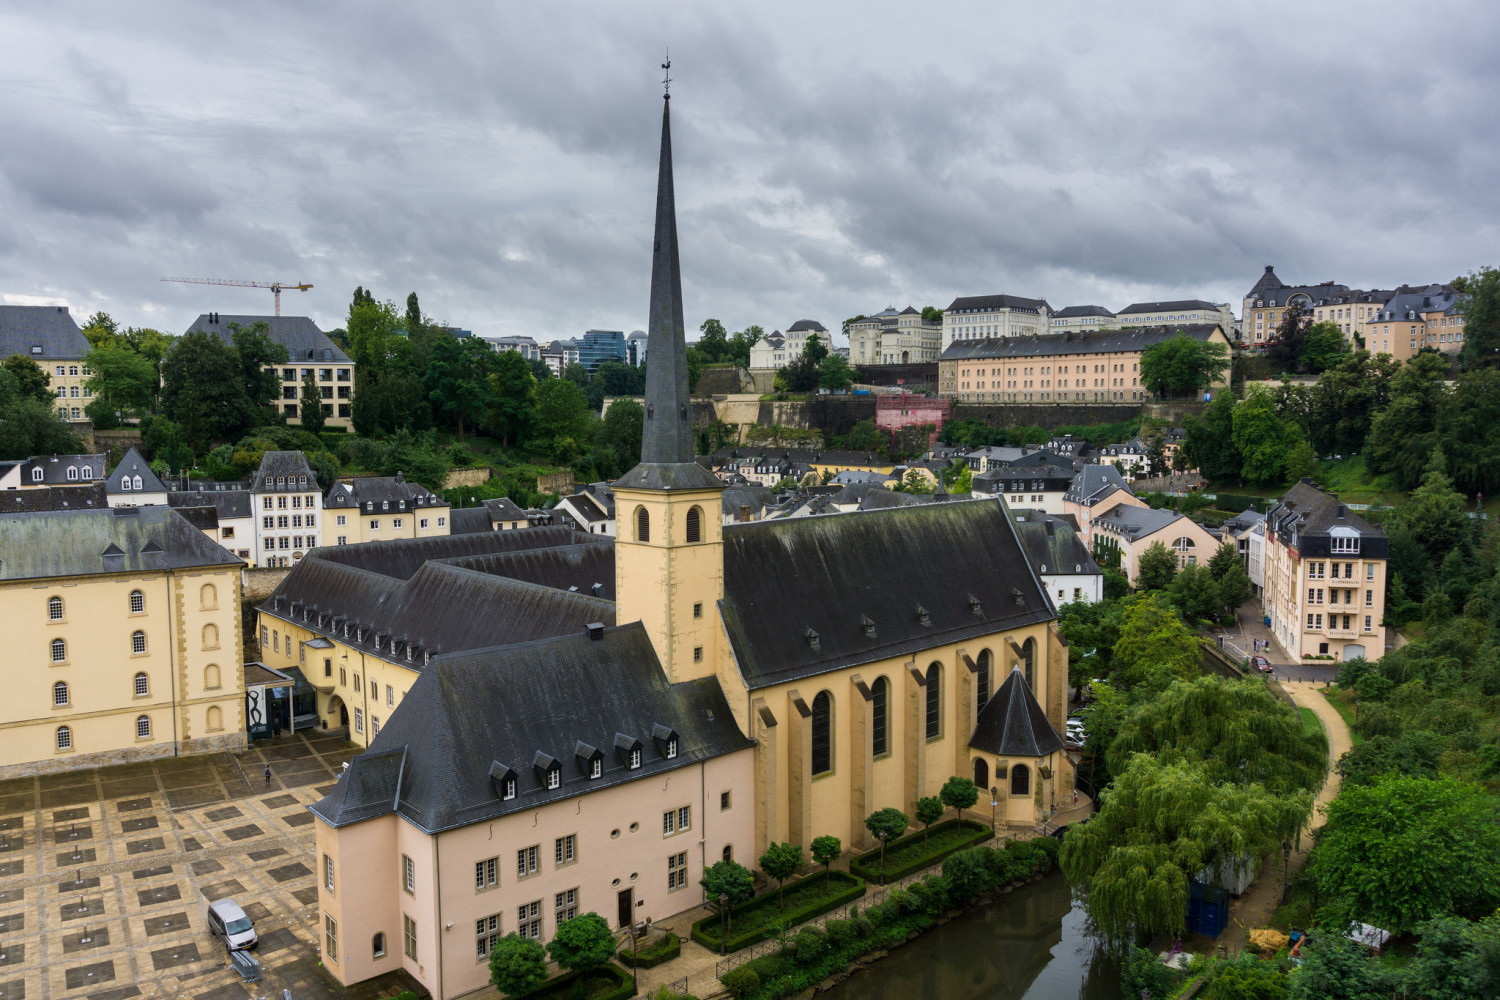 Free Tour of Luxemburgo (Only Spanish)